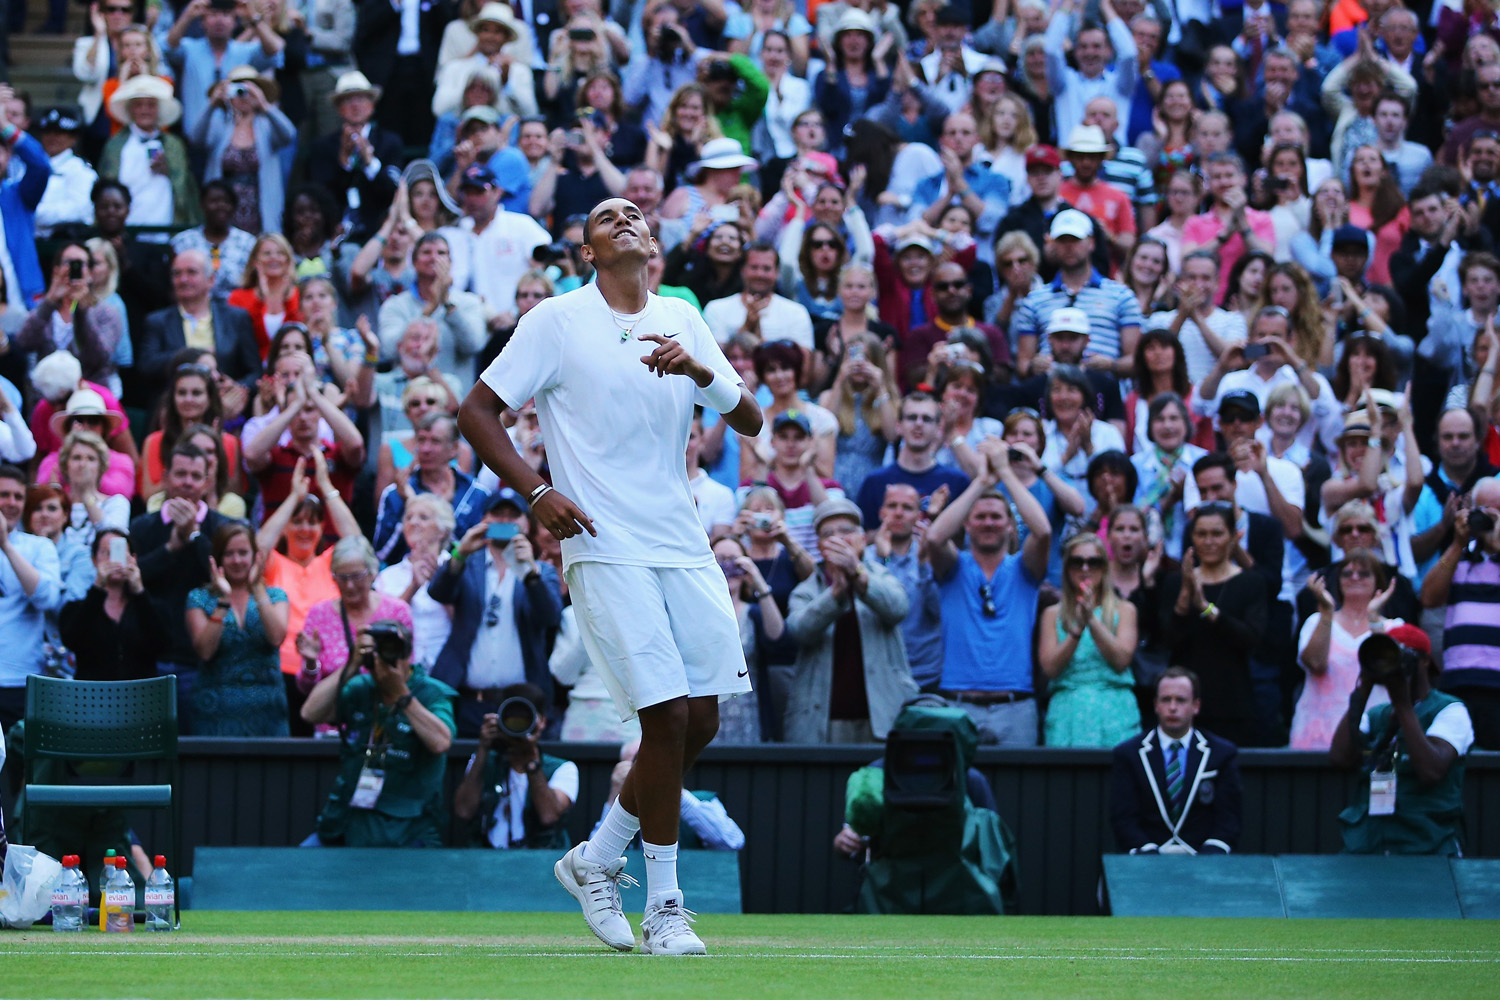 Jul. 1, 2014. Nick Kyrgios of Australia celebrates match point and winning his Gentlemen's Singles fourth round match against Rafael Nadal of Spain on day eight of the Wimbledon Lawn Tennis Championships at the All England Lawn Tennis and Croquet Club in London, England.